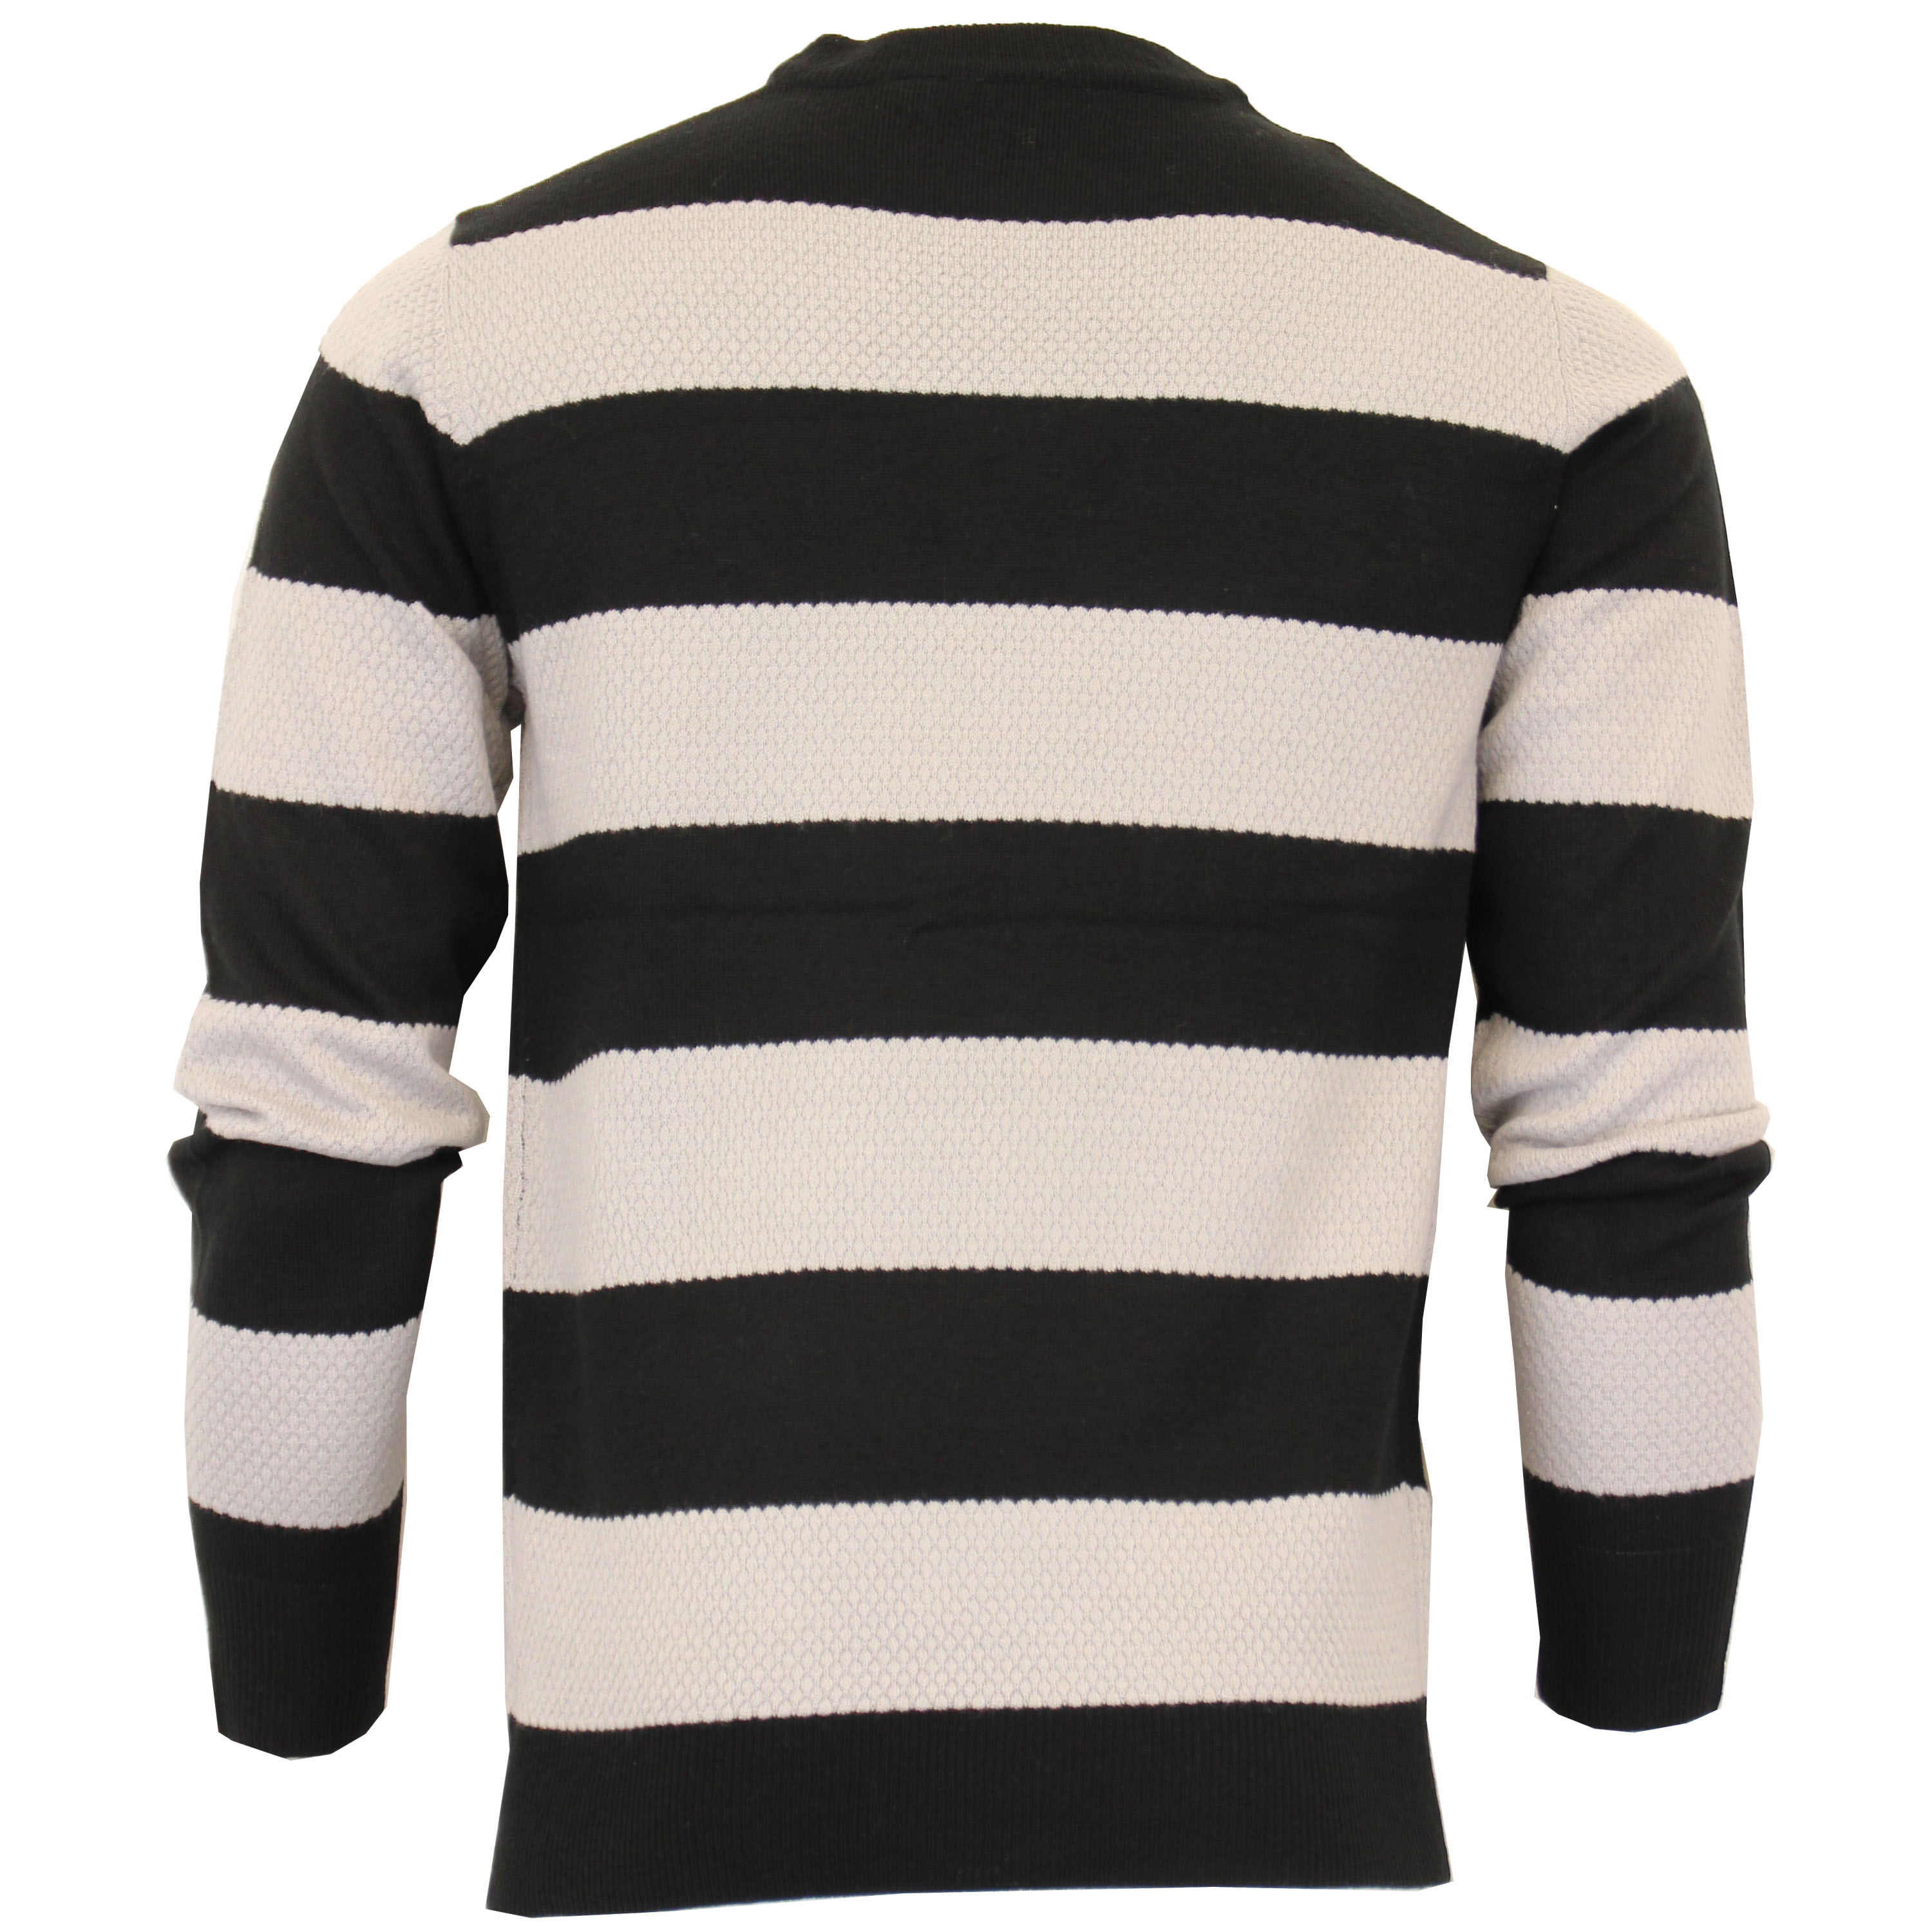 Mens-Jumper-Brave-Soul-Knitted-Sweater-Pullover-GOODWIN-Crew-Neck-Top-Winter-New thumbnail 3